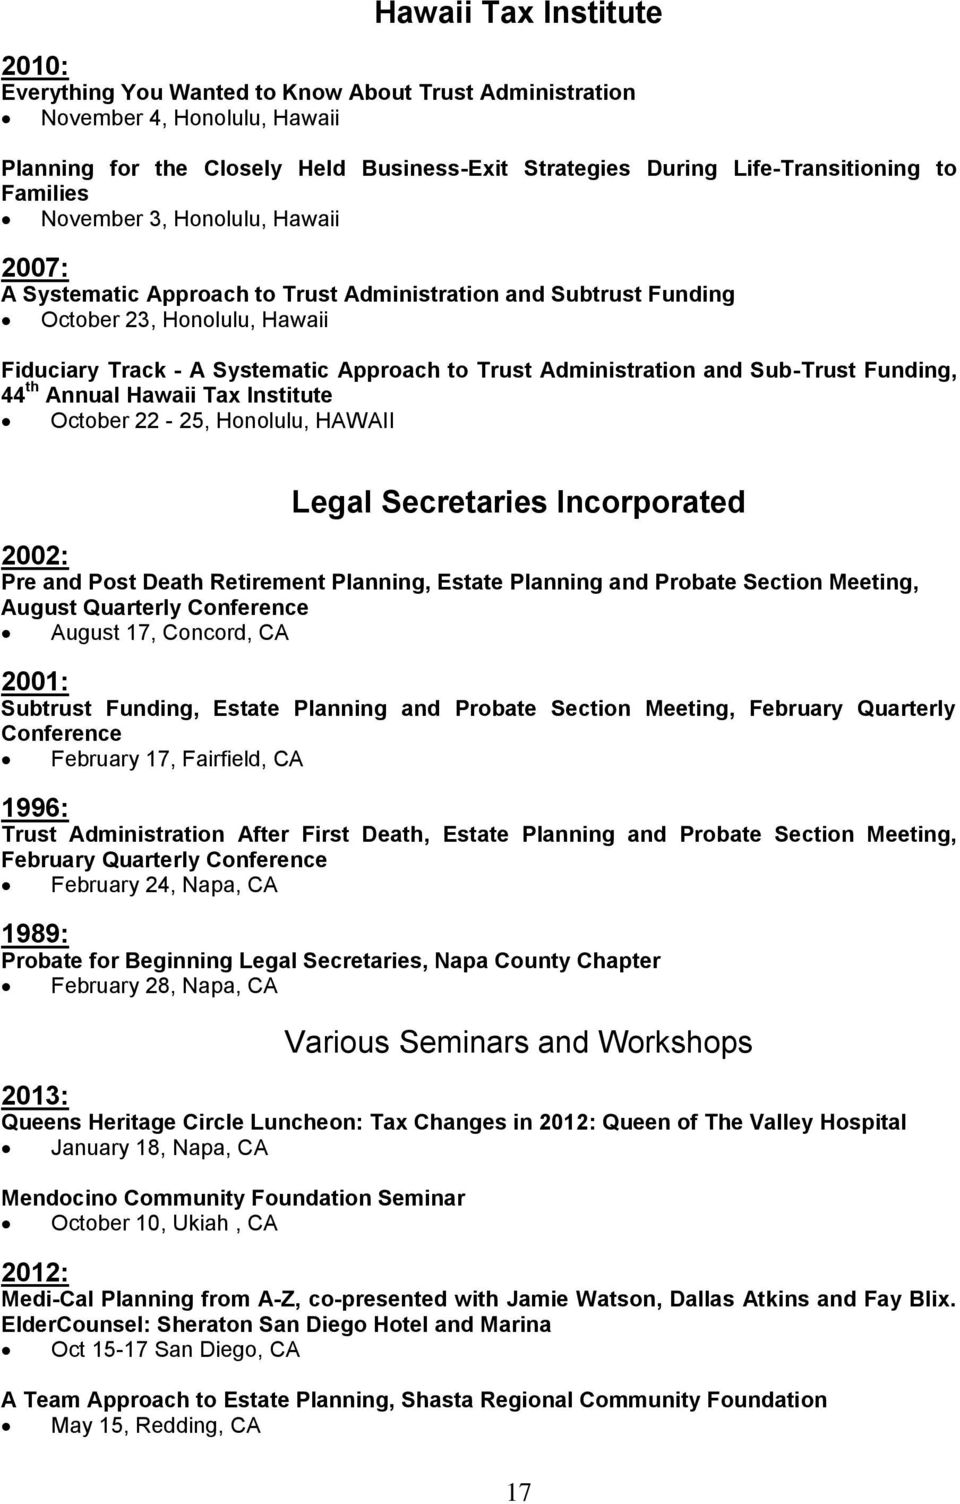 Administration and Sub-Trust Funding, 44 th Annual Hawaii Tax Institute October 22-25, Honolulu, HAWAII Legal Secretaries Incorporated 2002: Pre and Post Death Retirement Planning, Estate Planning